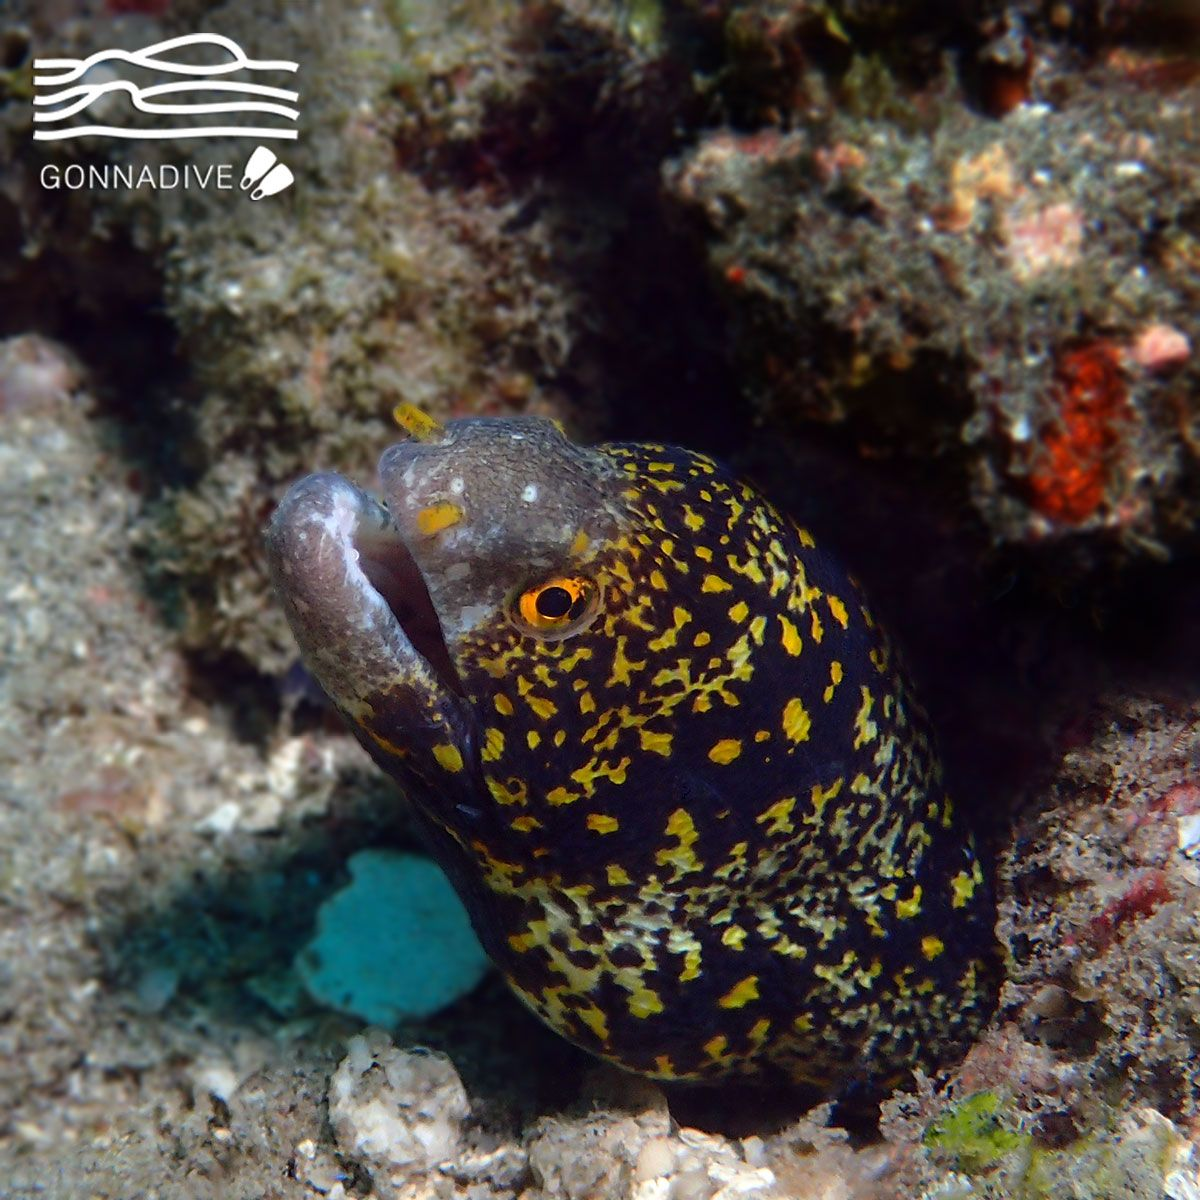 The Snowflake Moray Eel Also Known As Clouded Or Starry Moray Is One Of The Most Beautiful Morays It Can Grow Marine Life Photography Marine Life Moray Eel